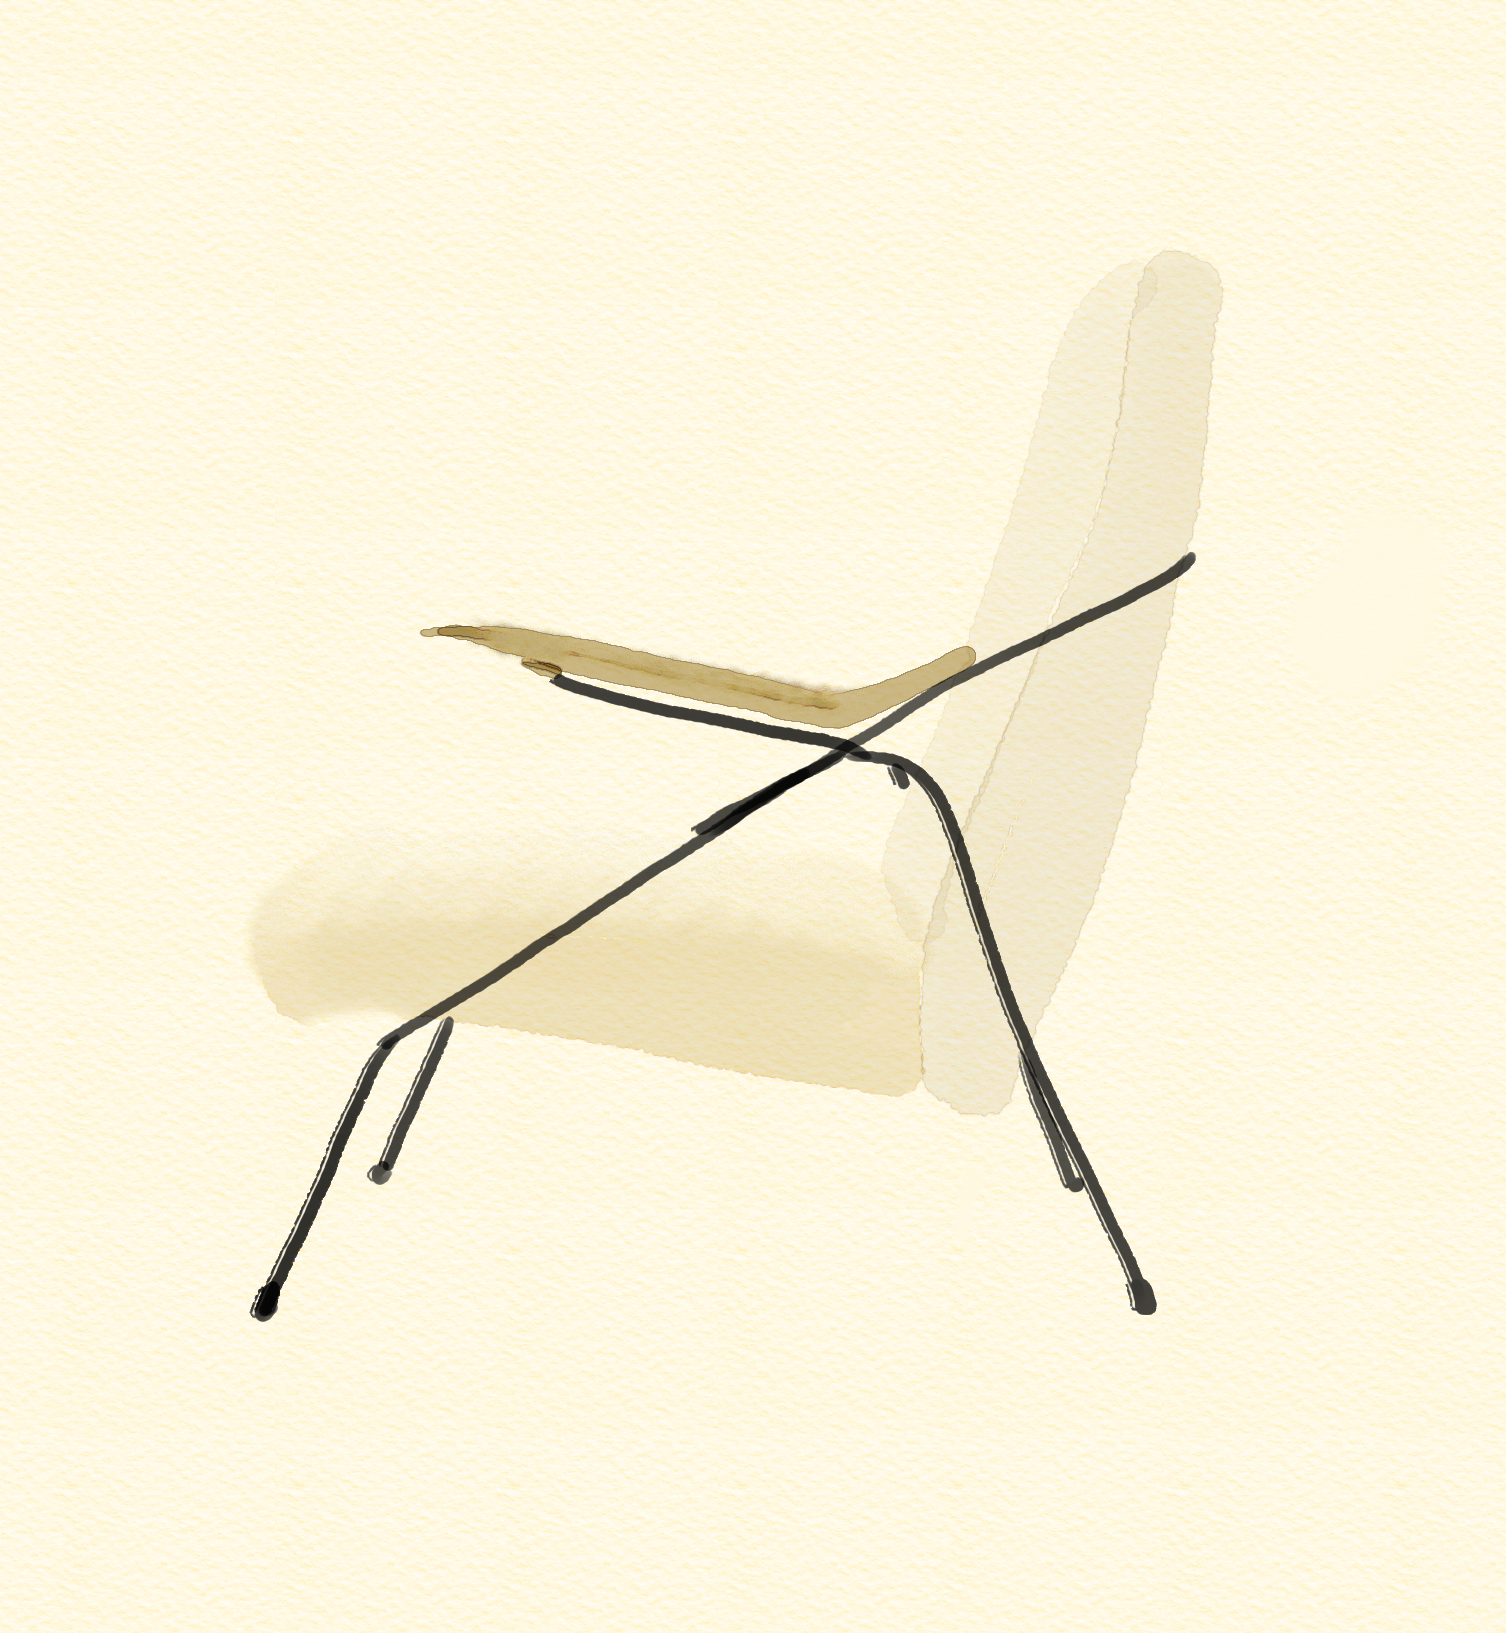 Jaymasacco-illustration-GuaricheChair.jpg